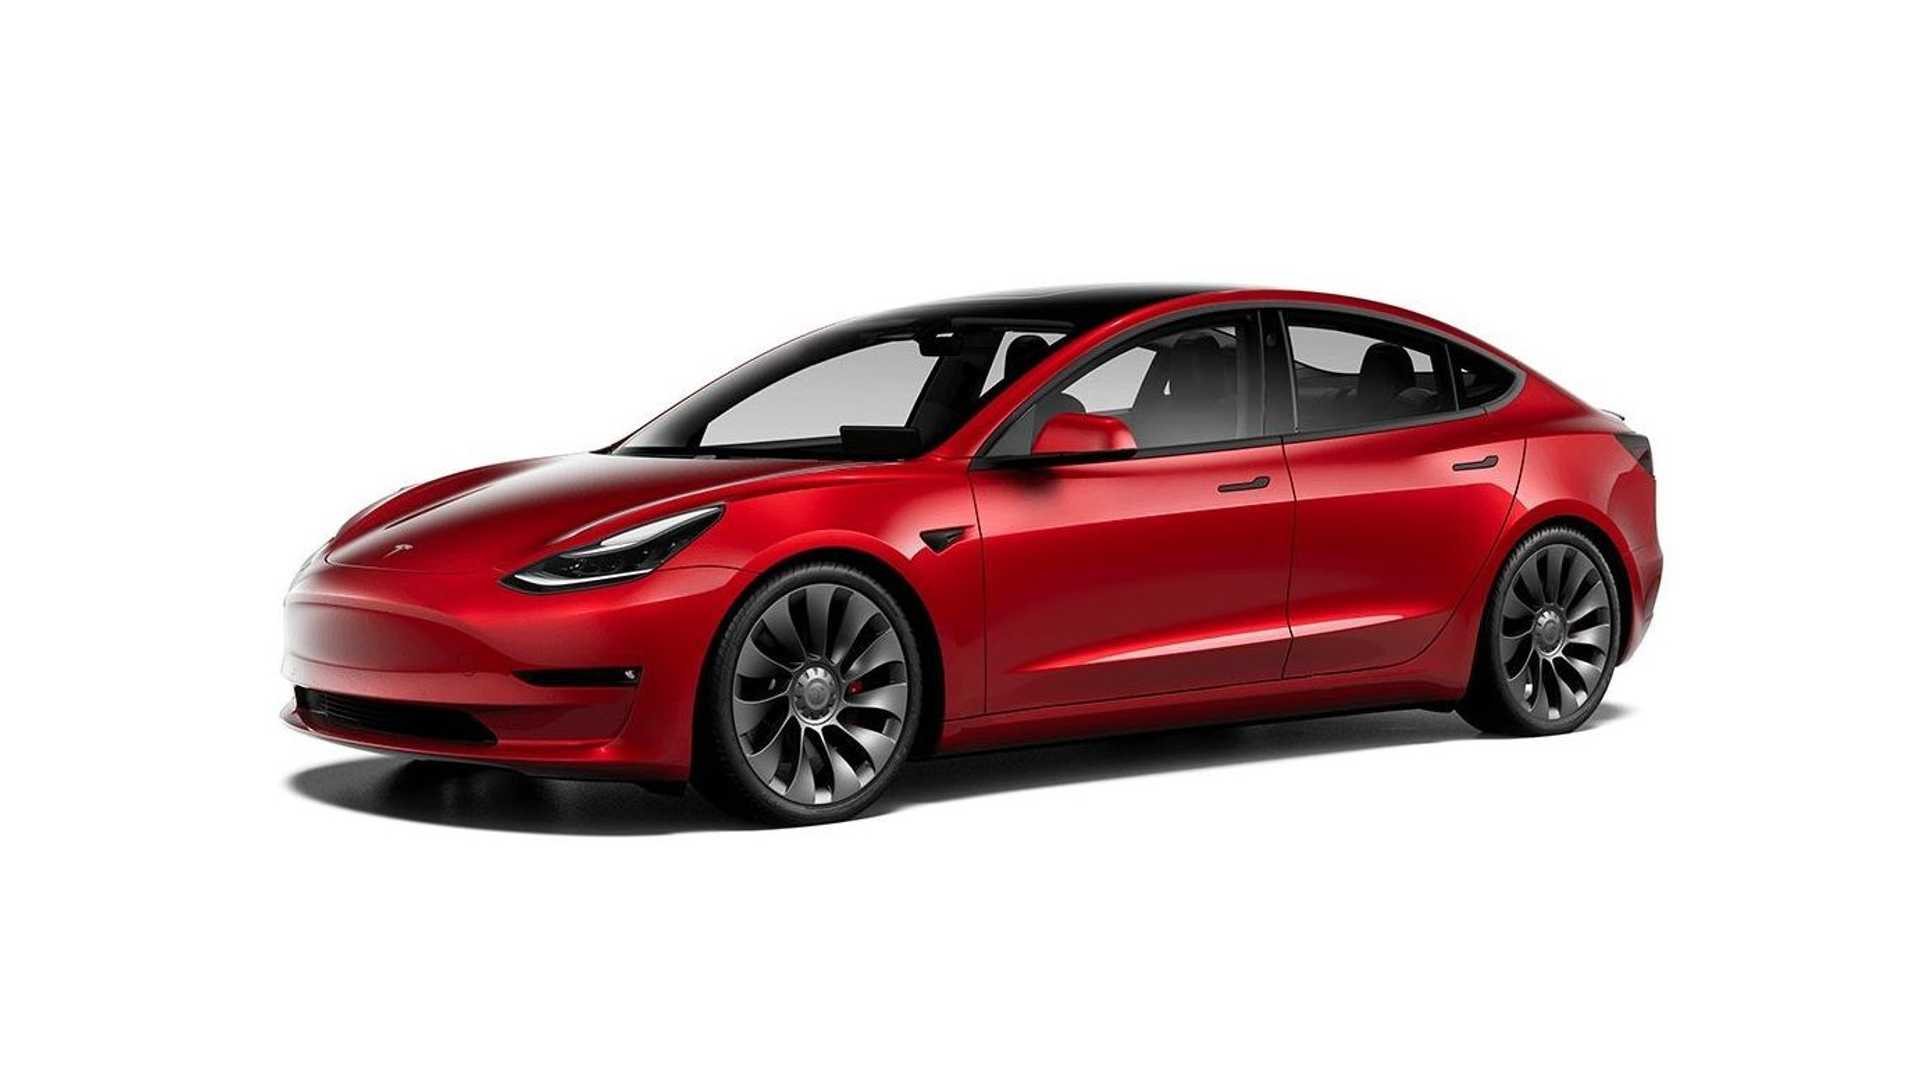 Tesla Japan Slashes Model 3 Prices By Up To 24 Percent To Spur Demand